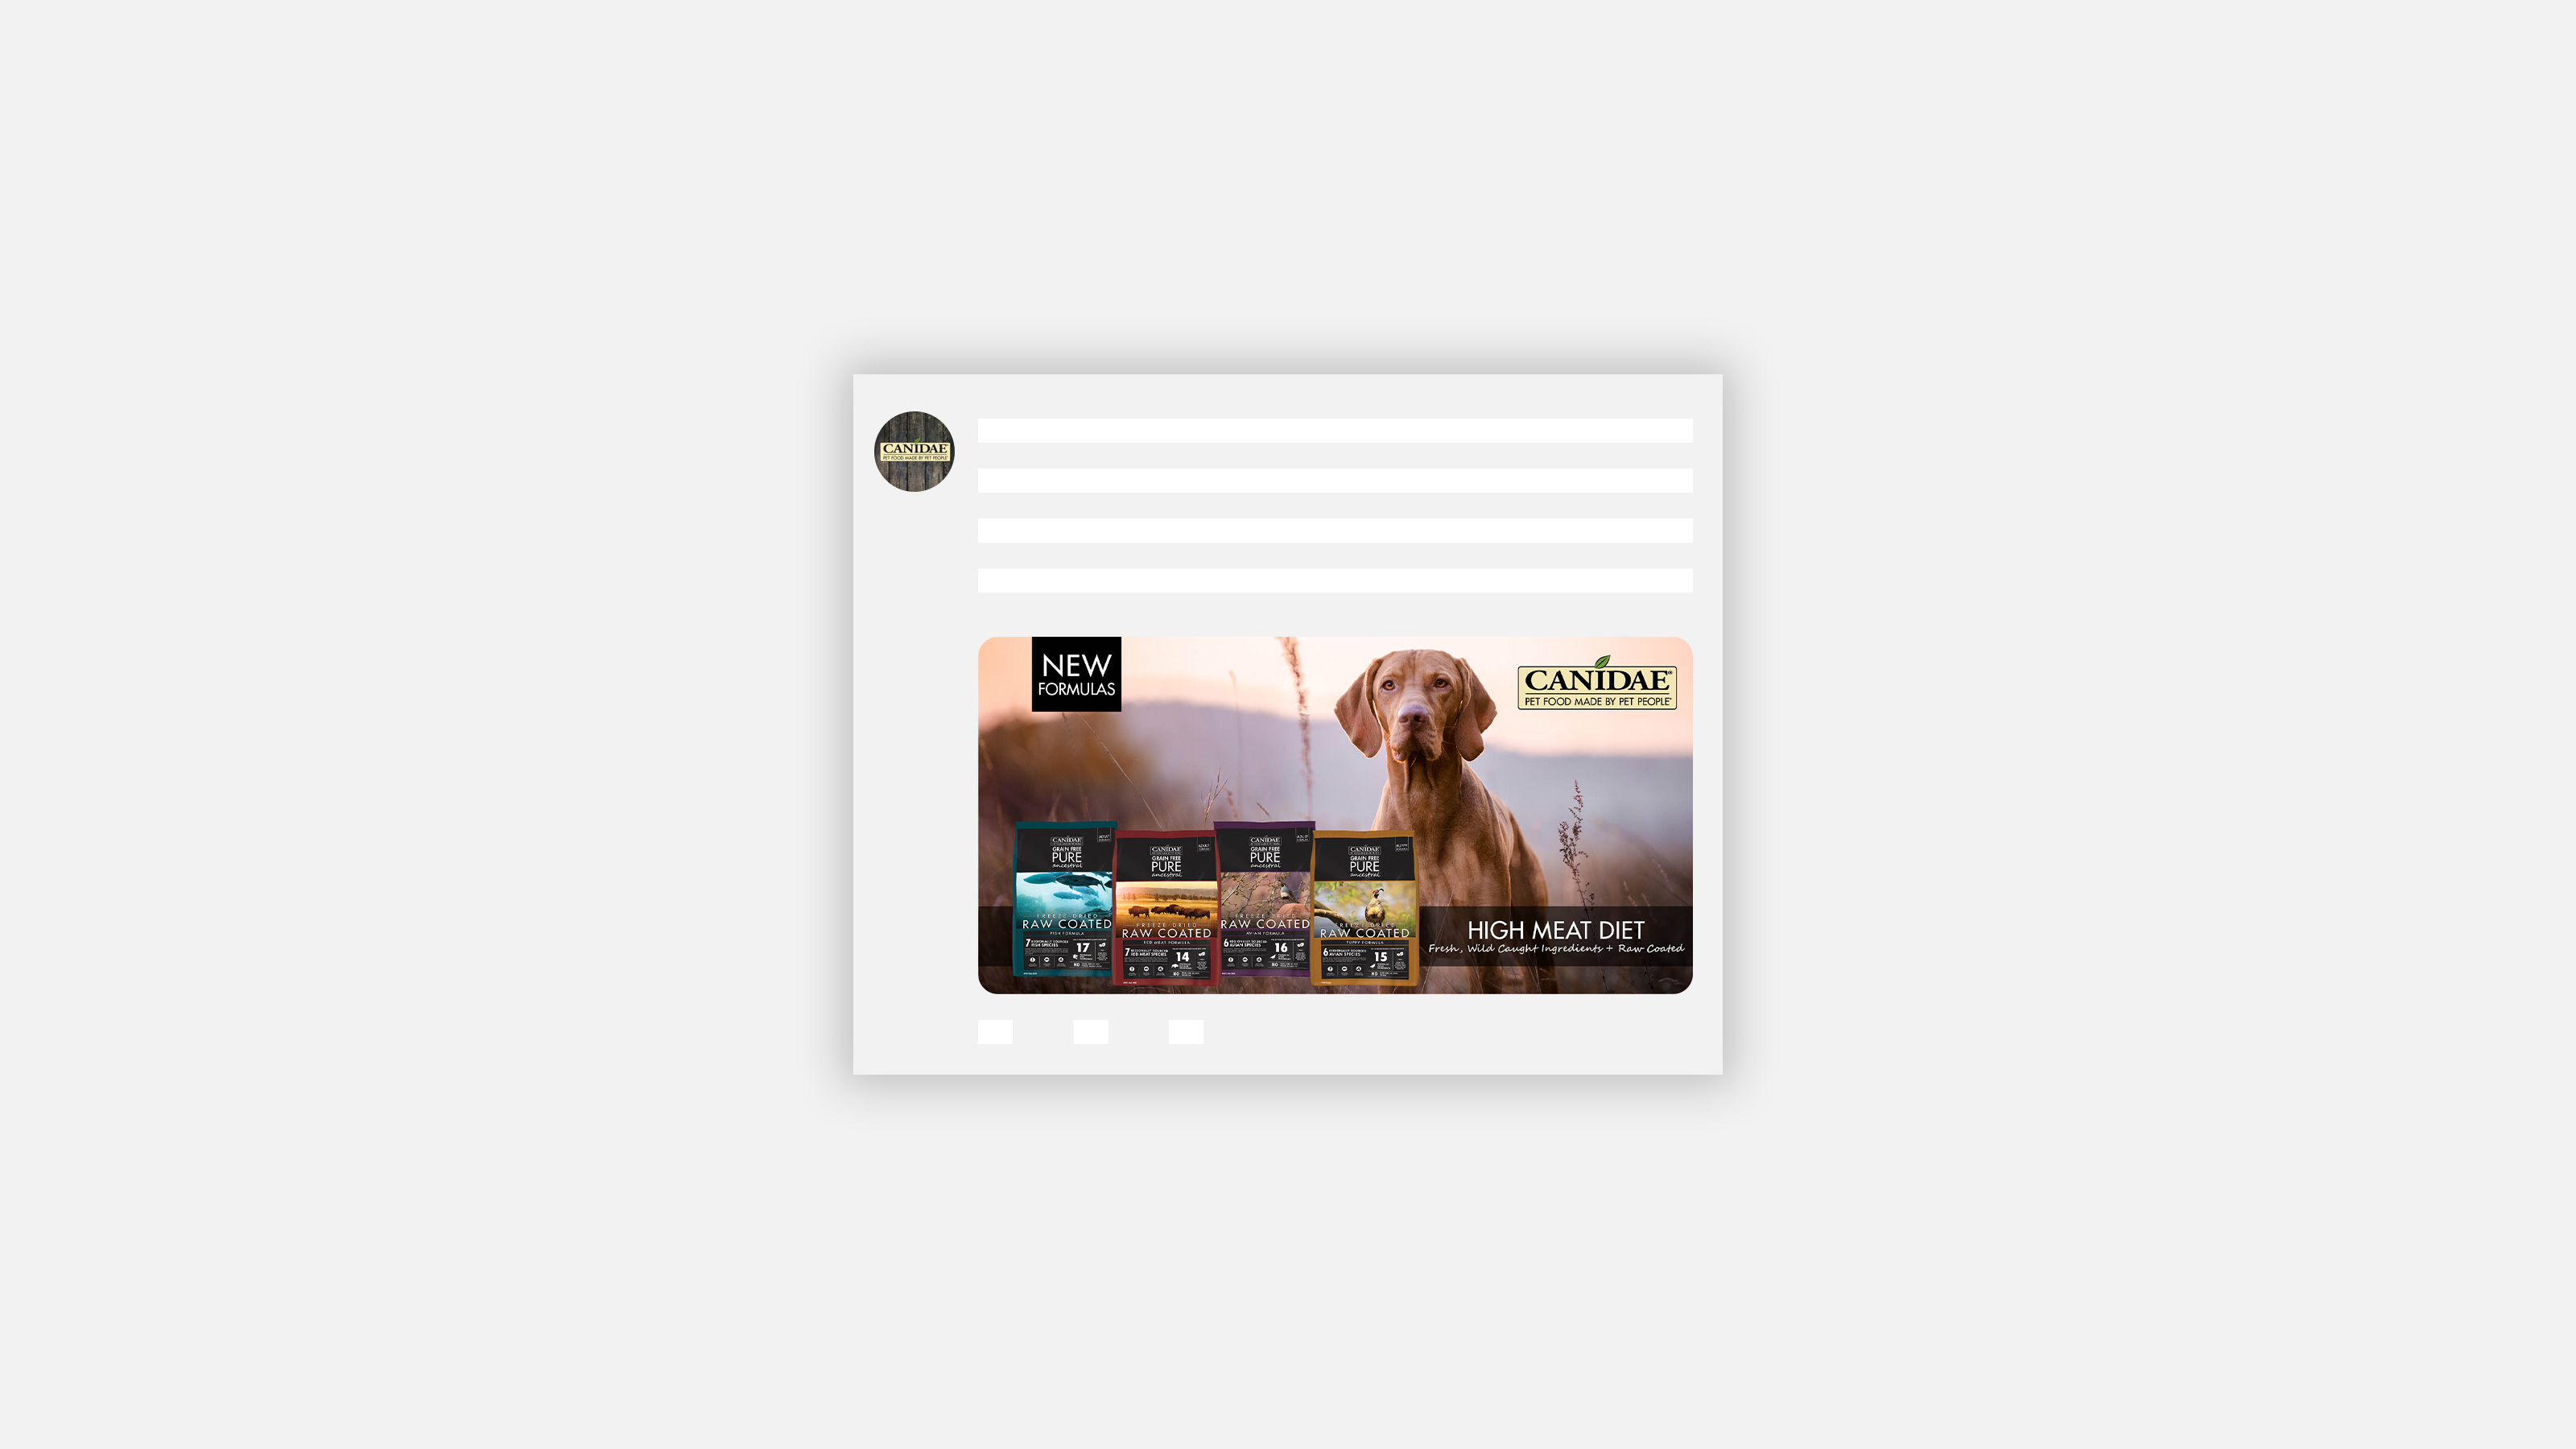 CANIDAE Pet Food Ancestral social media ad for Twitter